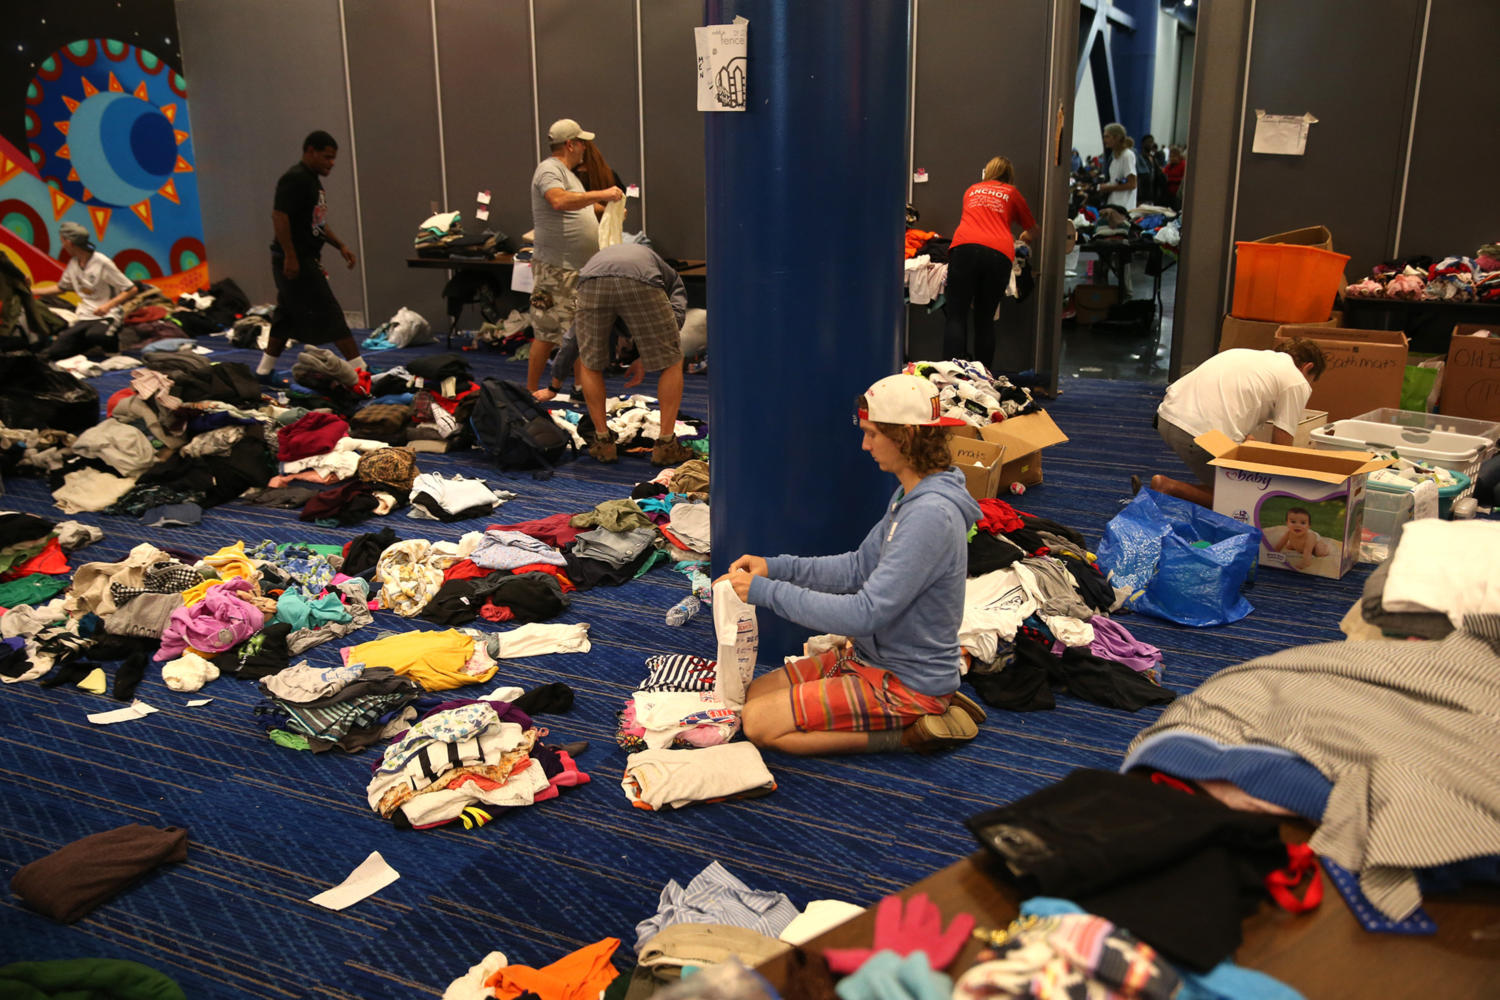 Volunteers+sort+donated+clothes+as+more+than+9%2C000+and+counting+have+gathered+at+the+downtown+evacuation+center+at+the+George+R.+Brown+Convention+Center+on+Tuesday%2C+Aug.+29%2C+2017+in+Houston%2C+Texas.+%28Robert+Gauthier%2FLos+Angeles+Times%29